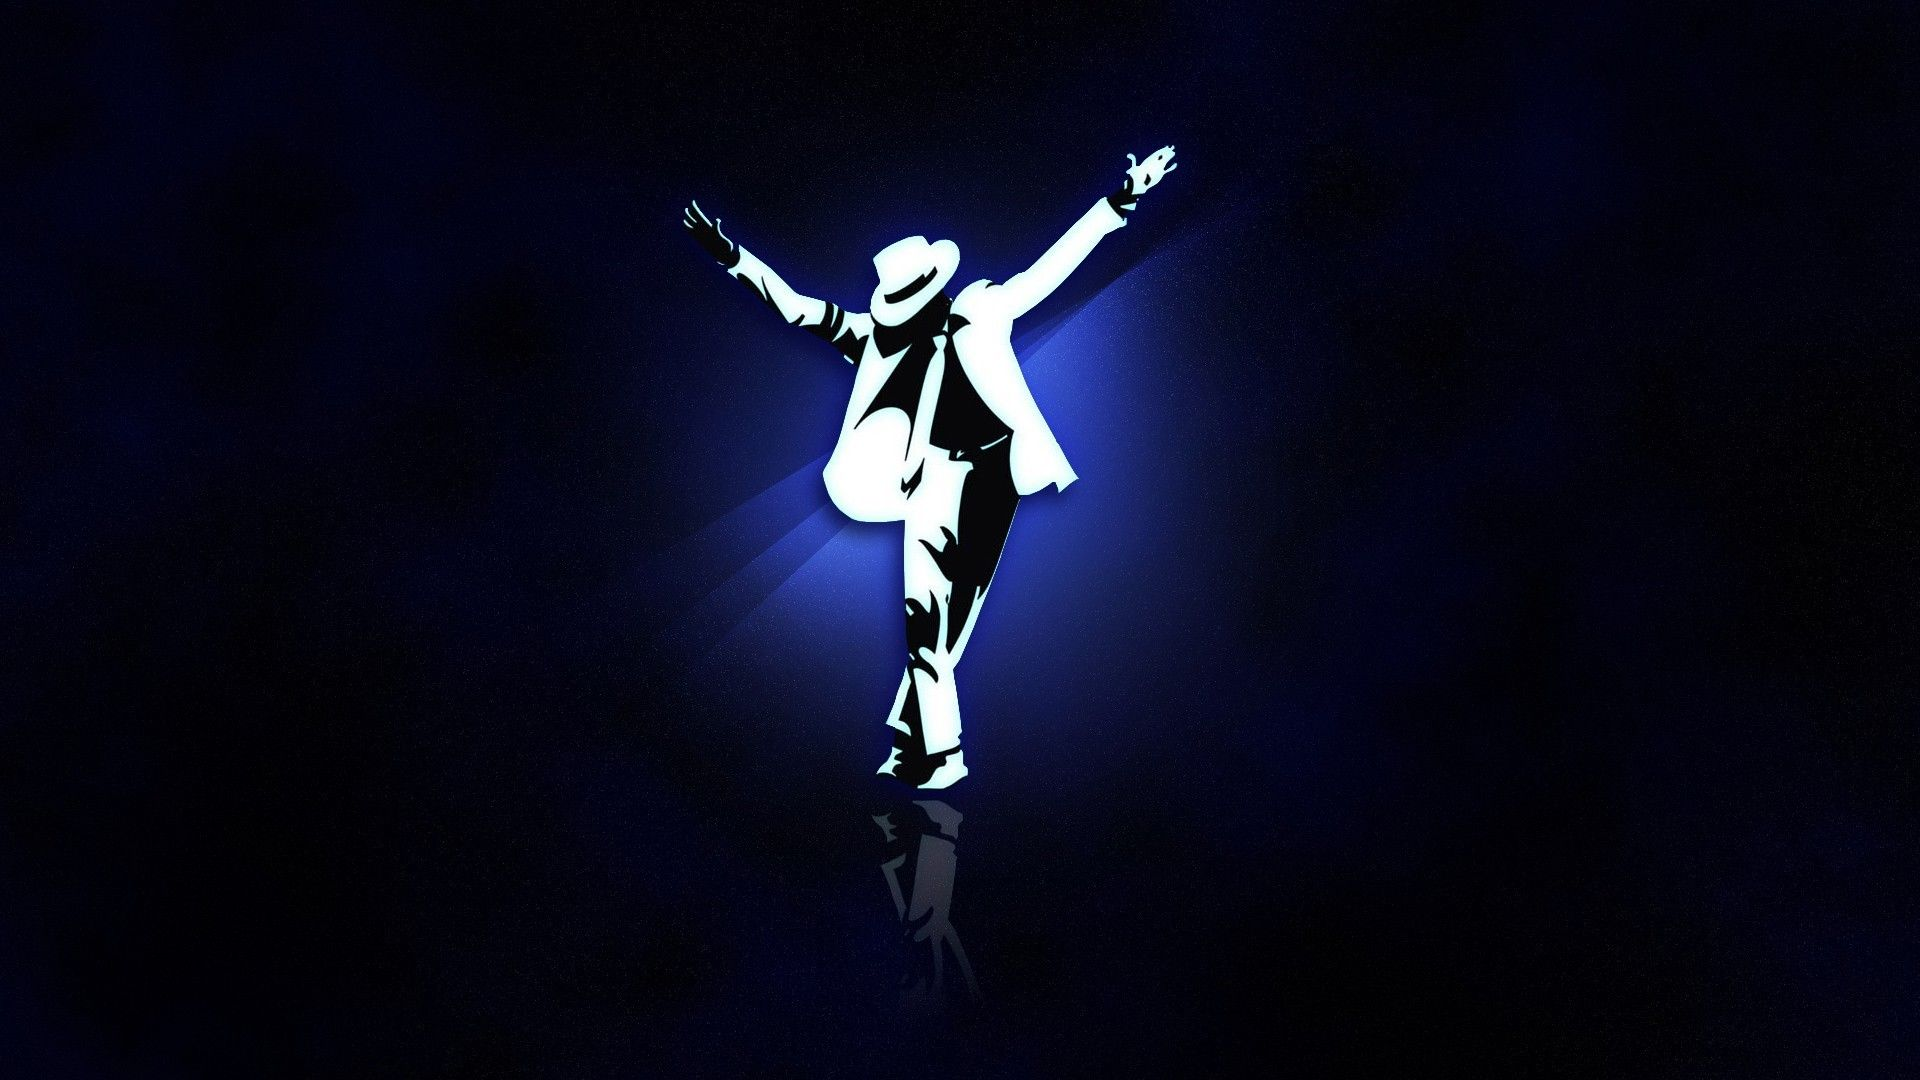 Cool Michael Jackson Wallpapers Top Free Cool Michael Jackson Backgrounds Wallpaperaccess